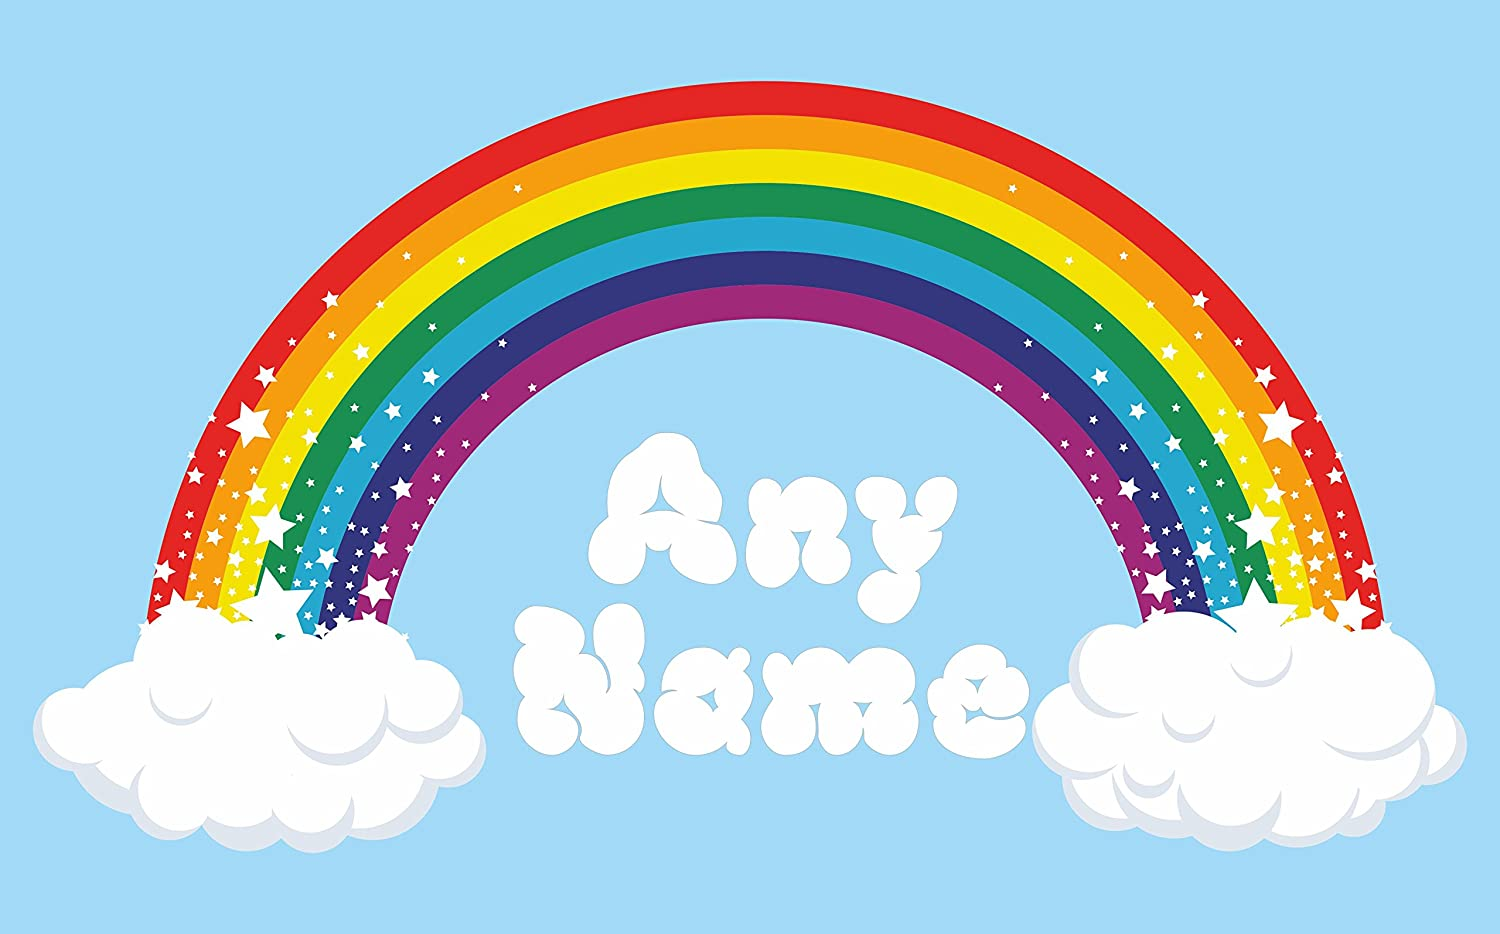 Delicieux Rainbow Wall Art. Choose Any Name Vinyl Sticker 3 Sizes, Full Colour Decal  (Large: 100cm X 54cm) (Large: 100cm X 54cm): Amazon.co.uk: Baby